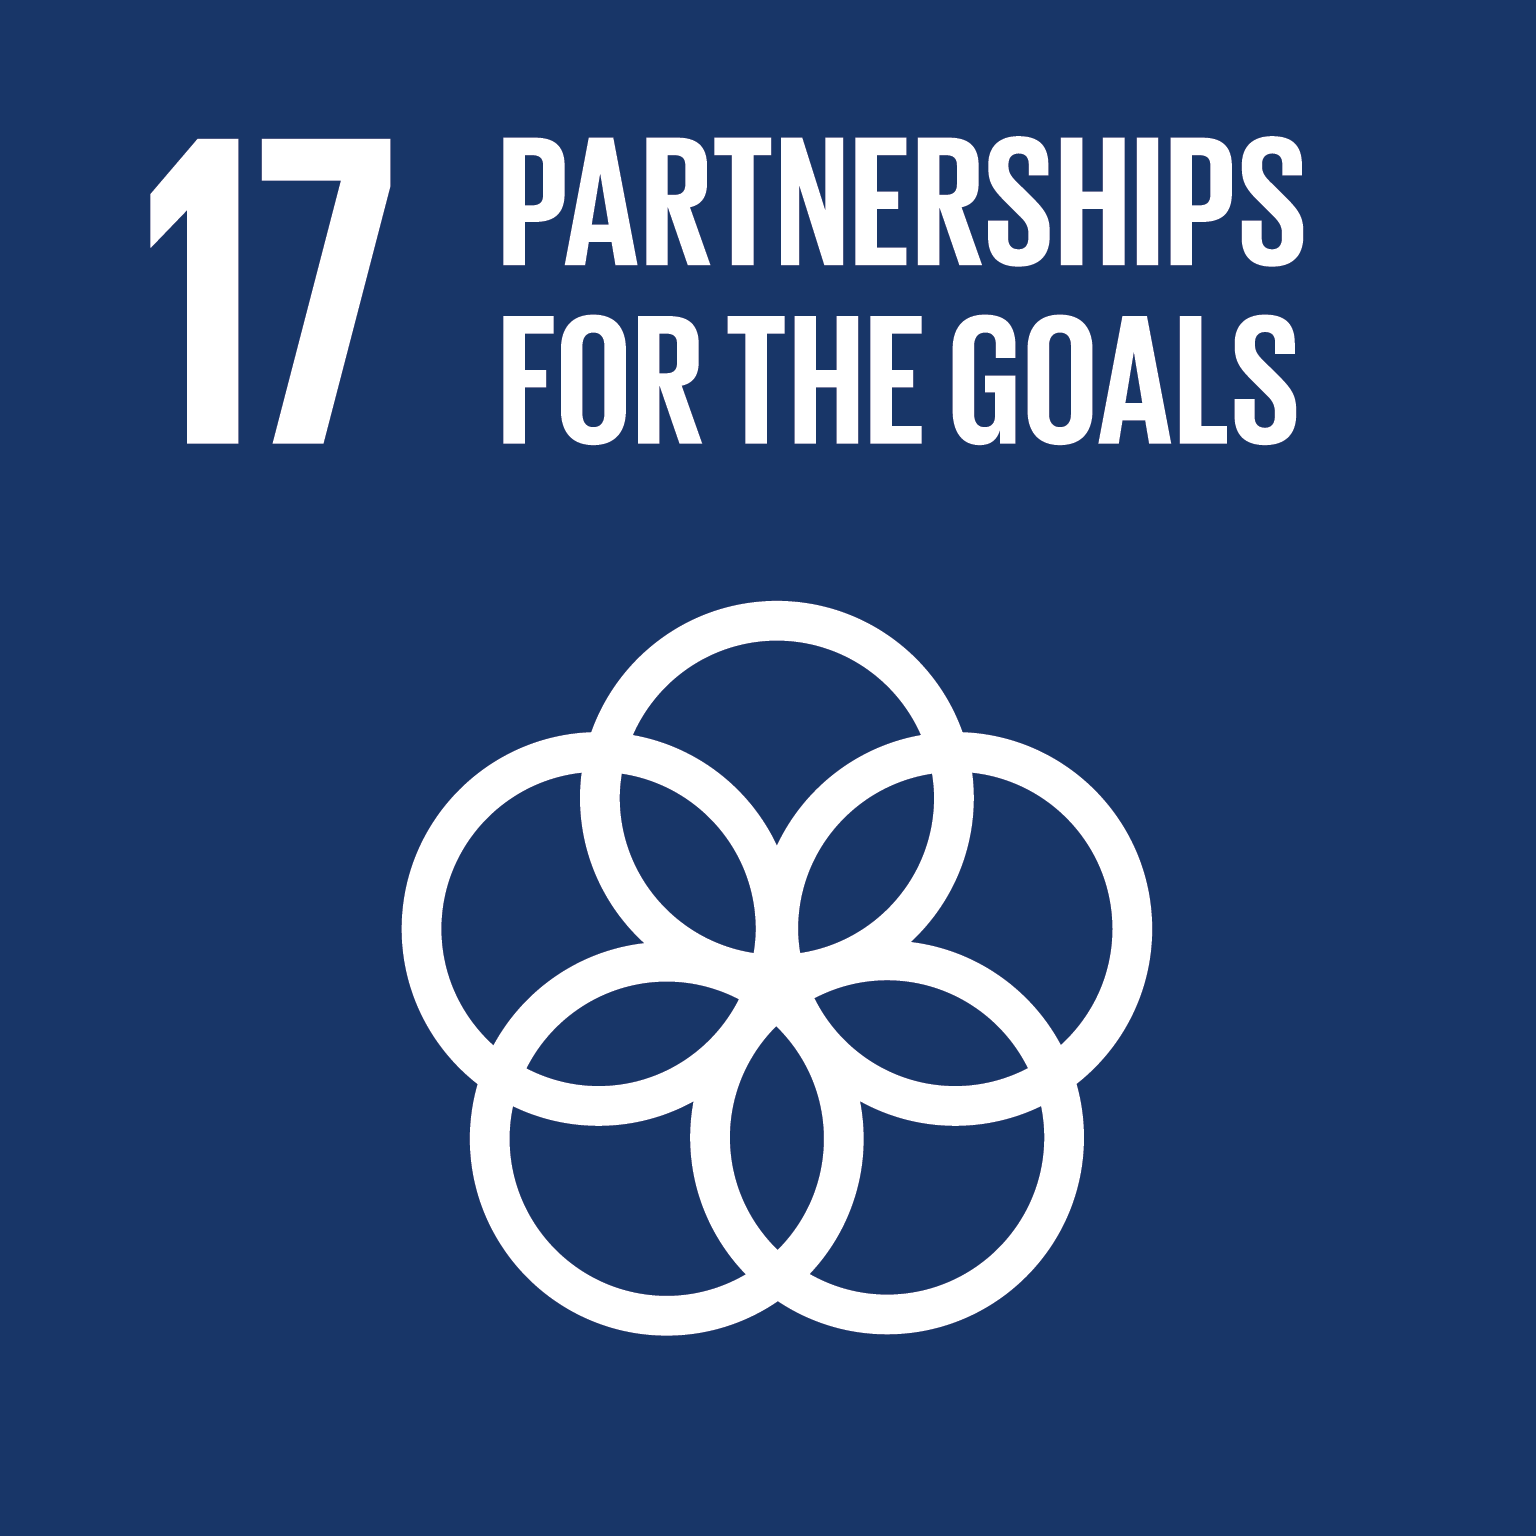 SDG 17 Sustainable Development Goal